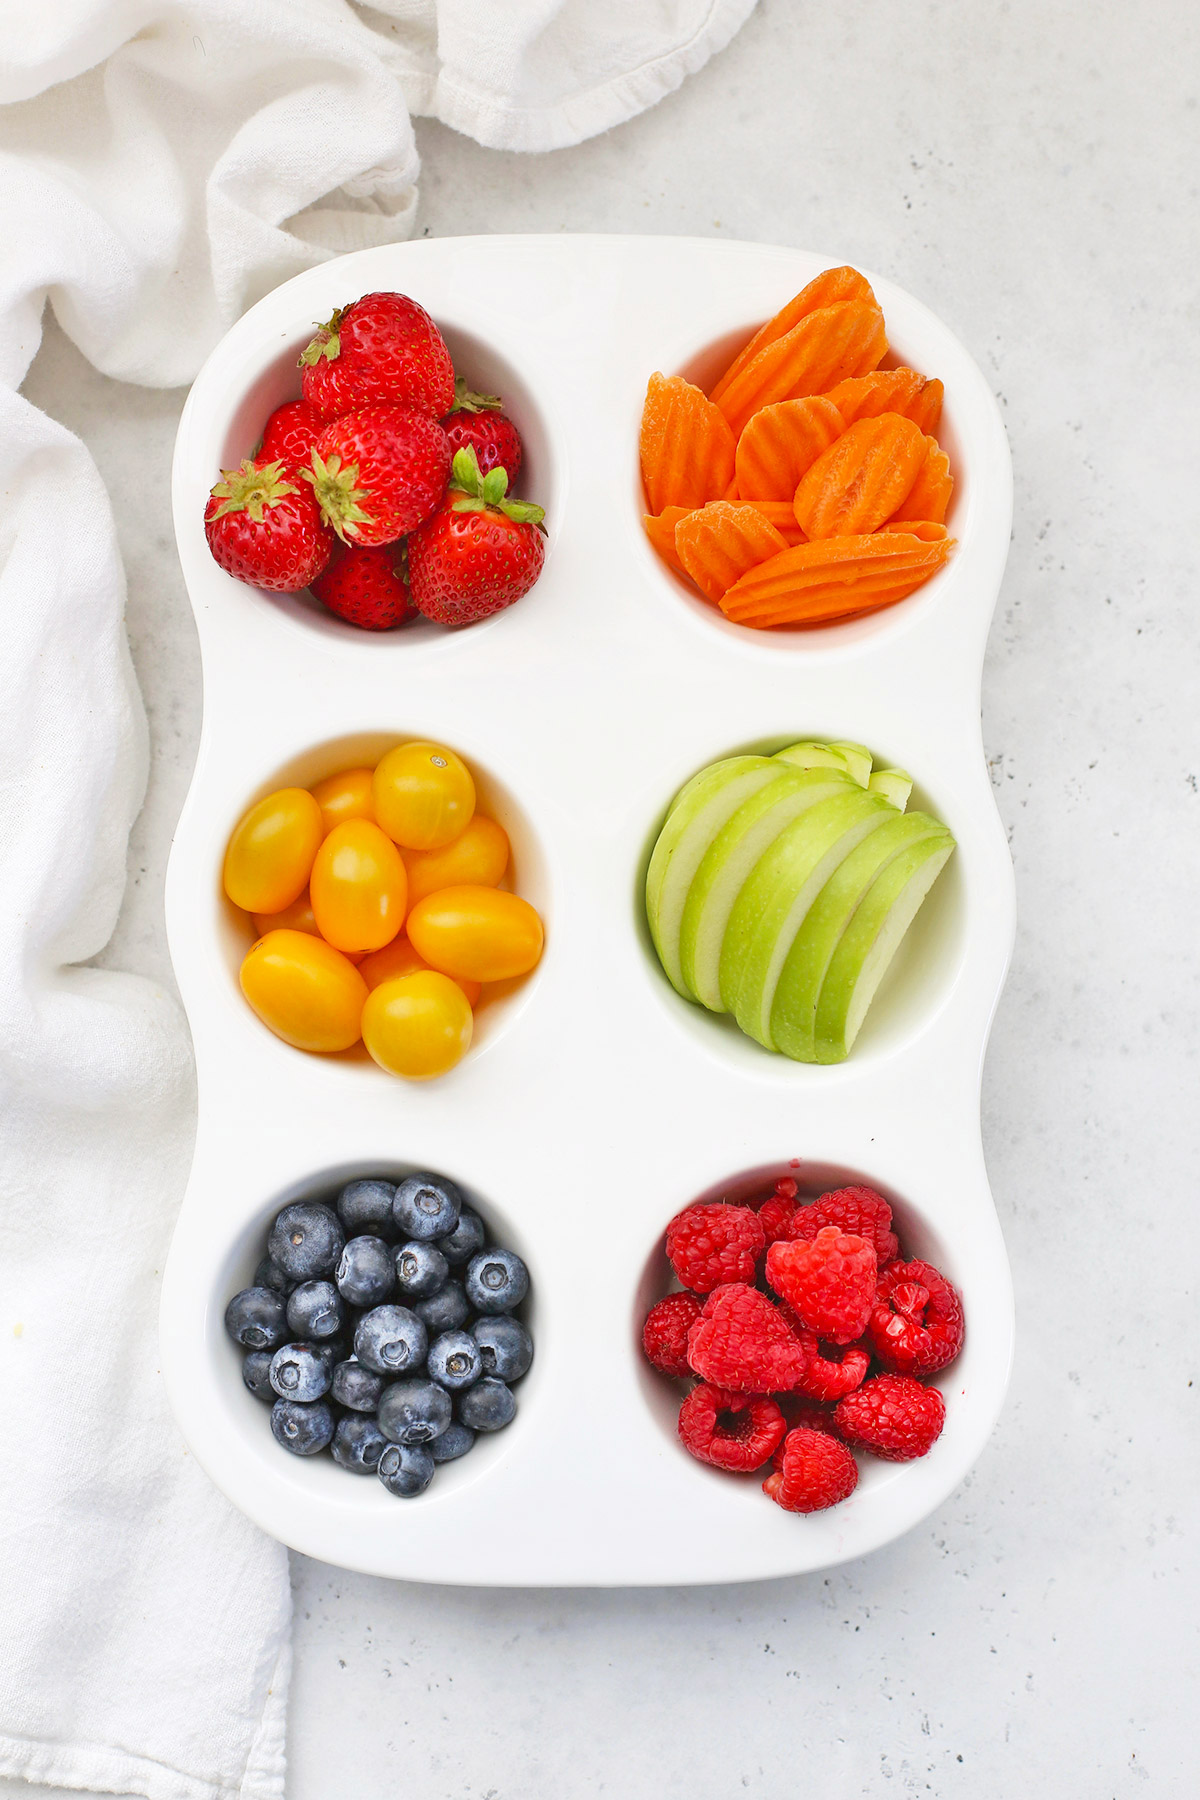 Rainbow Muffin Tin Snack Tray For Kids with Strawberries, Carrot Chips, Yellow Grape Tomatoes, Green Apple Slices, Blueberries, and Raspberries